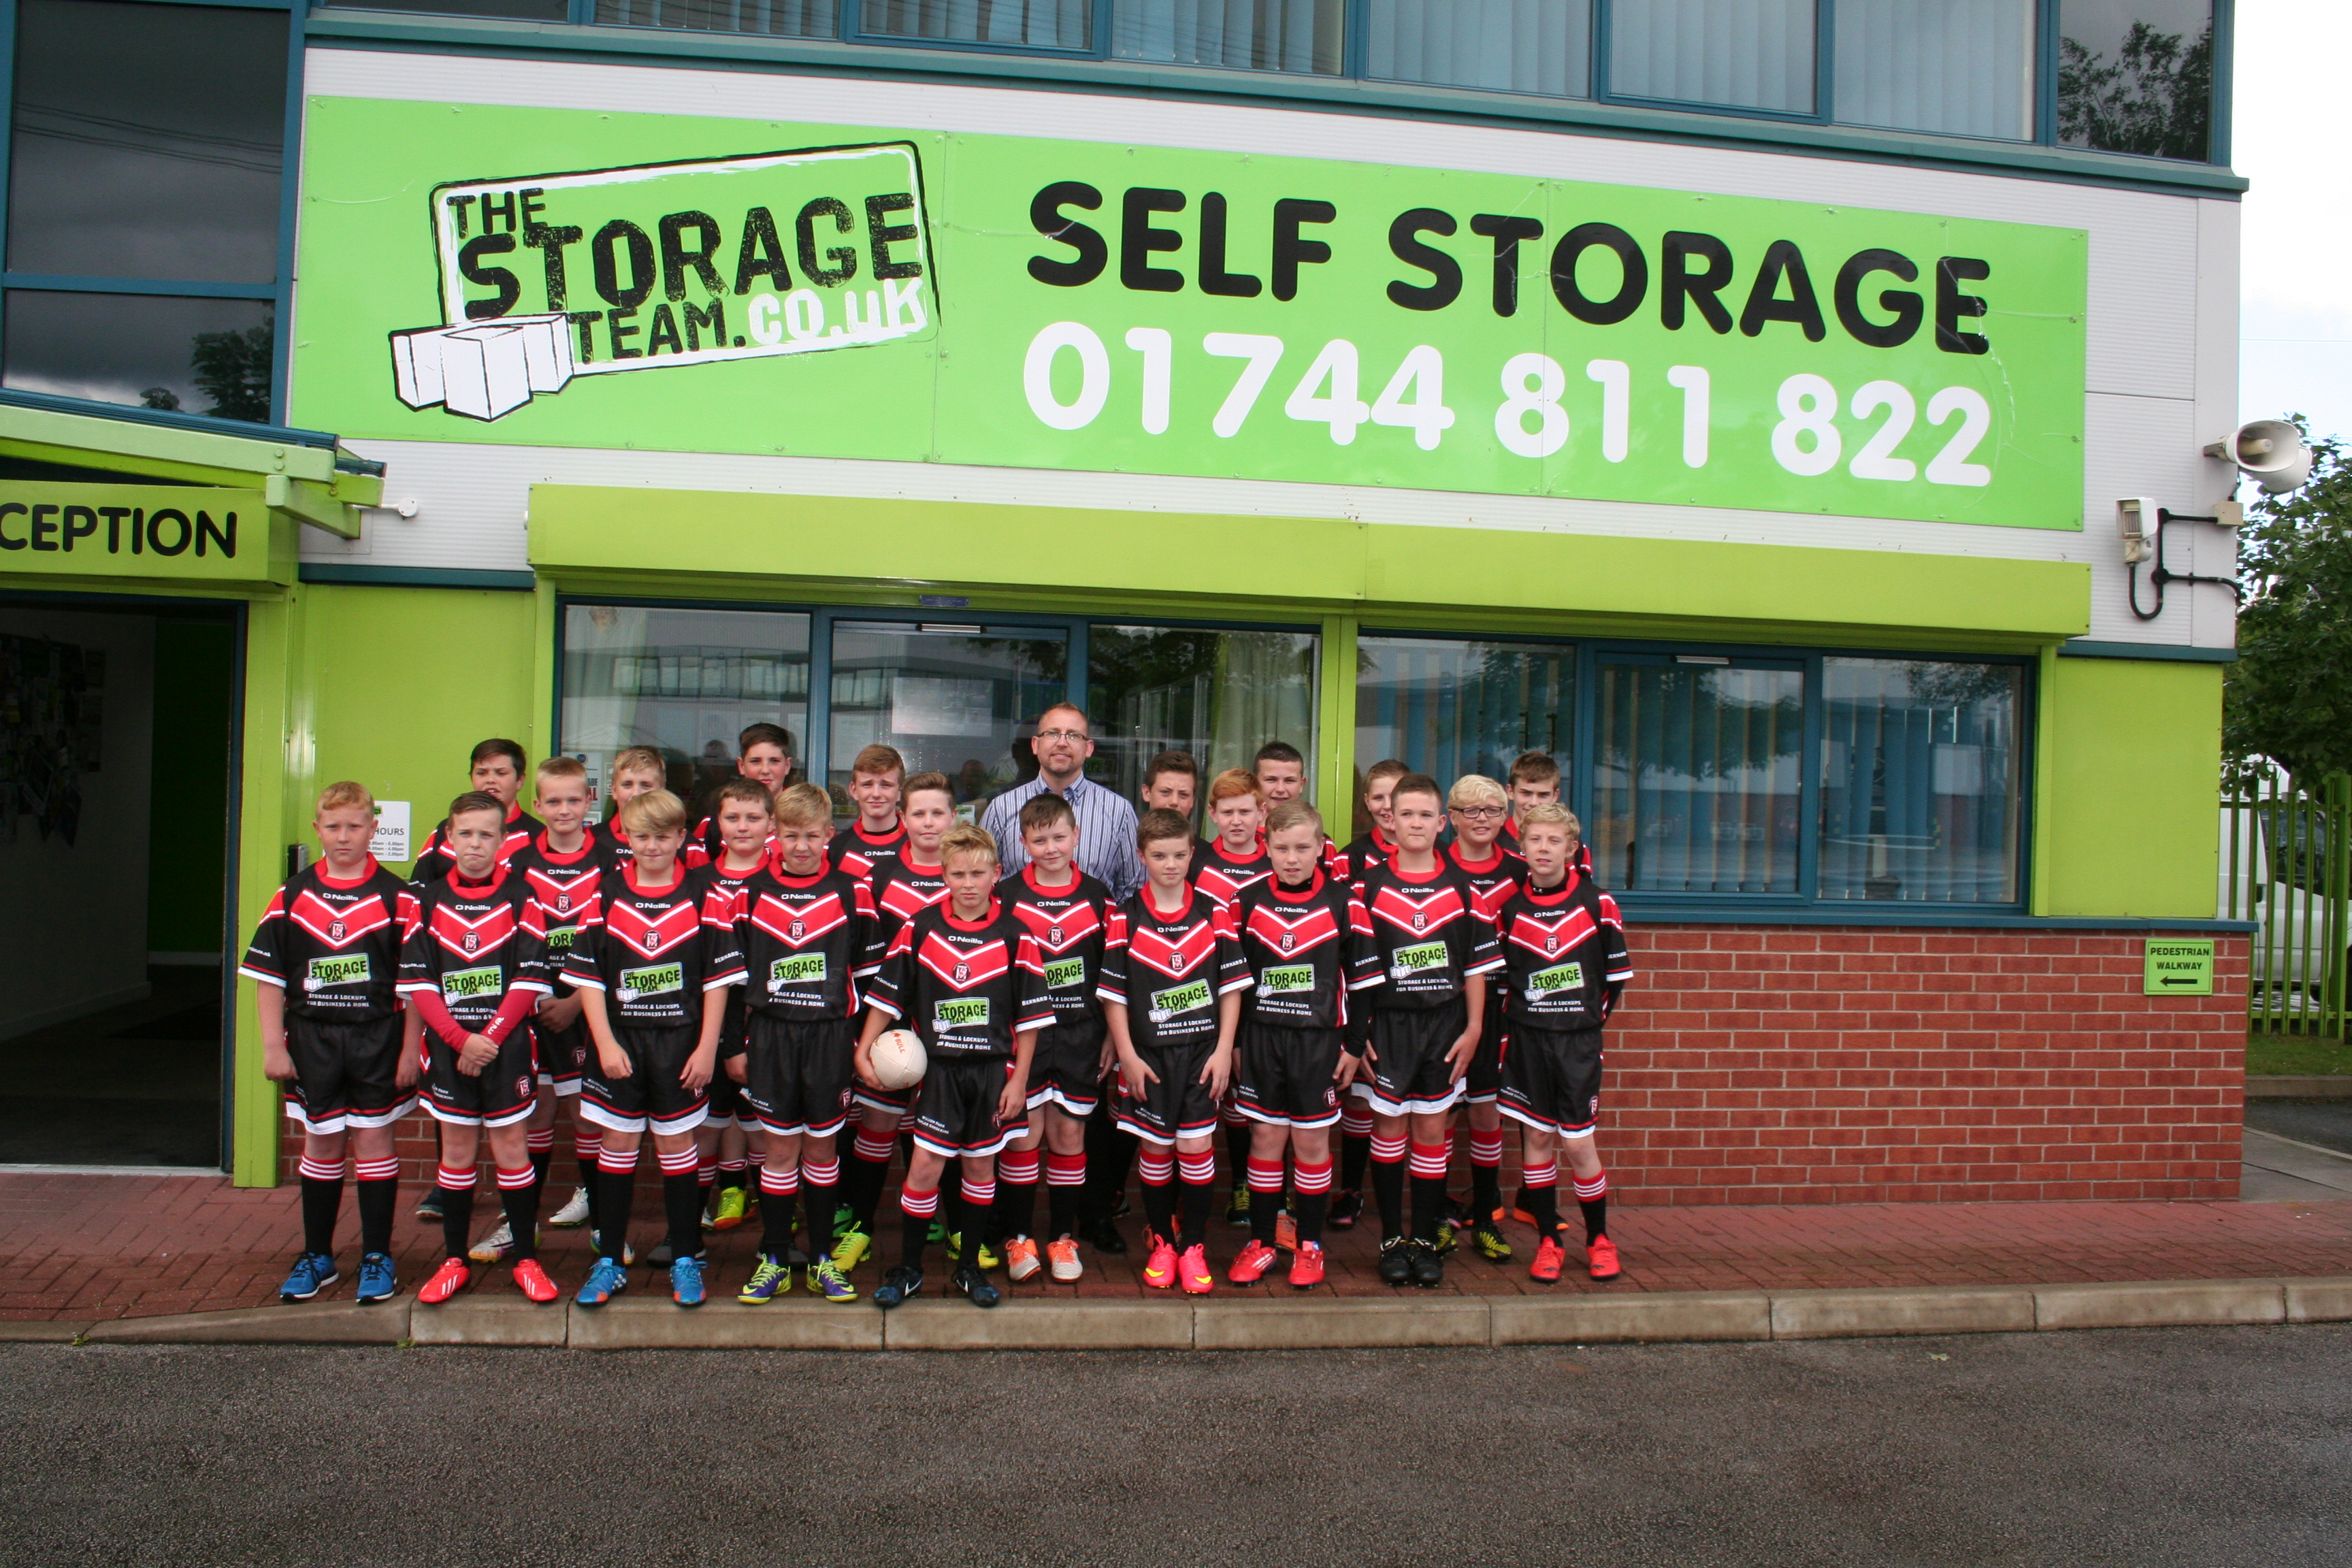 Rugby, St Helens, The Storage Team